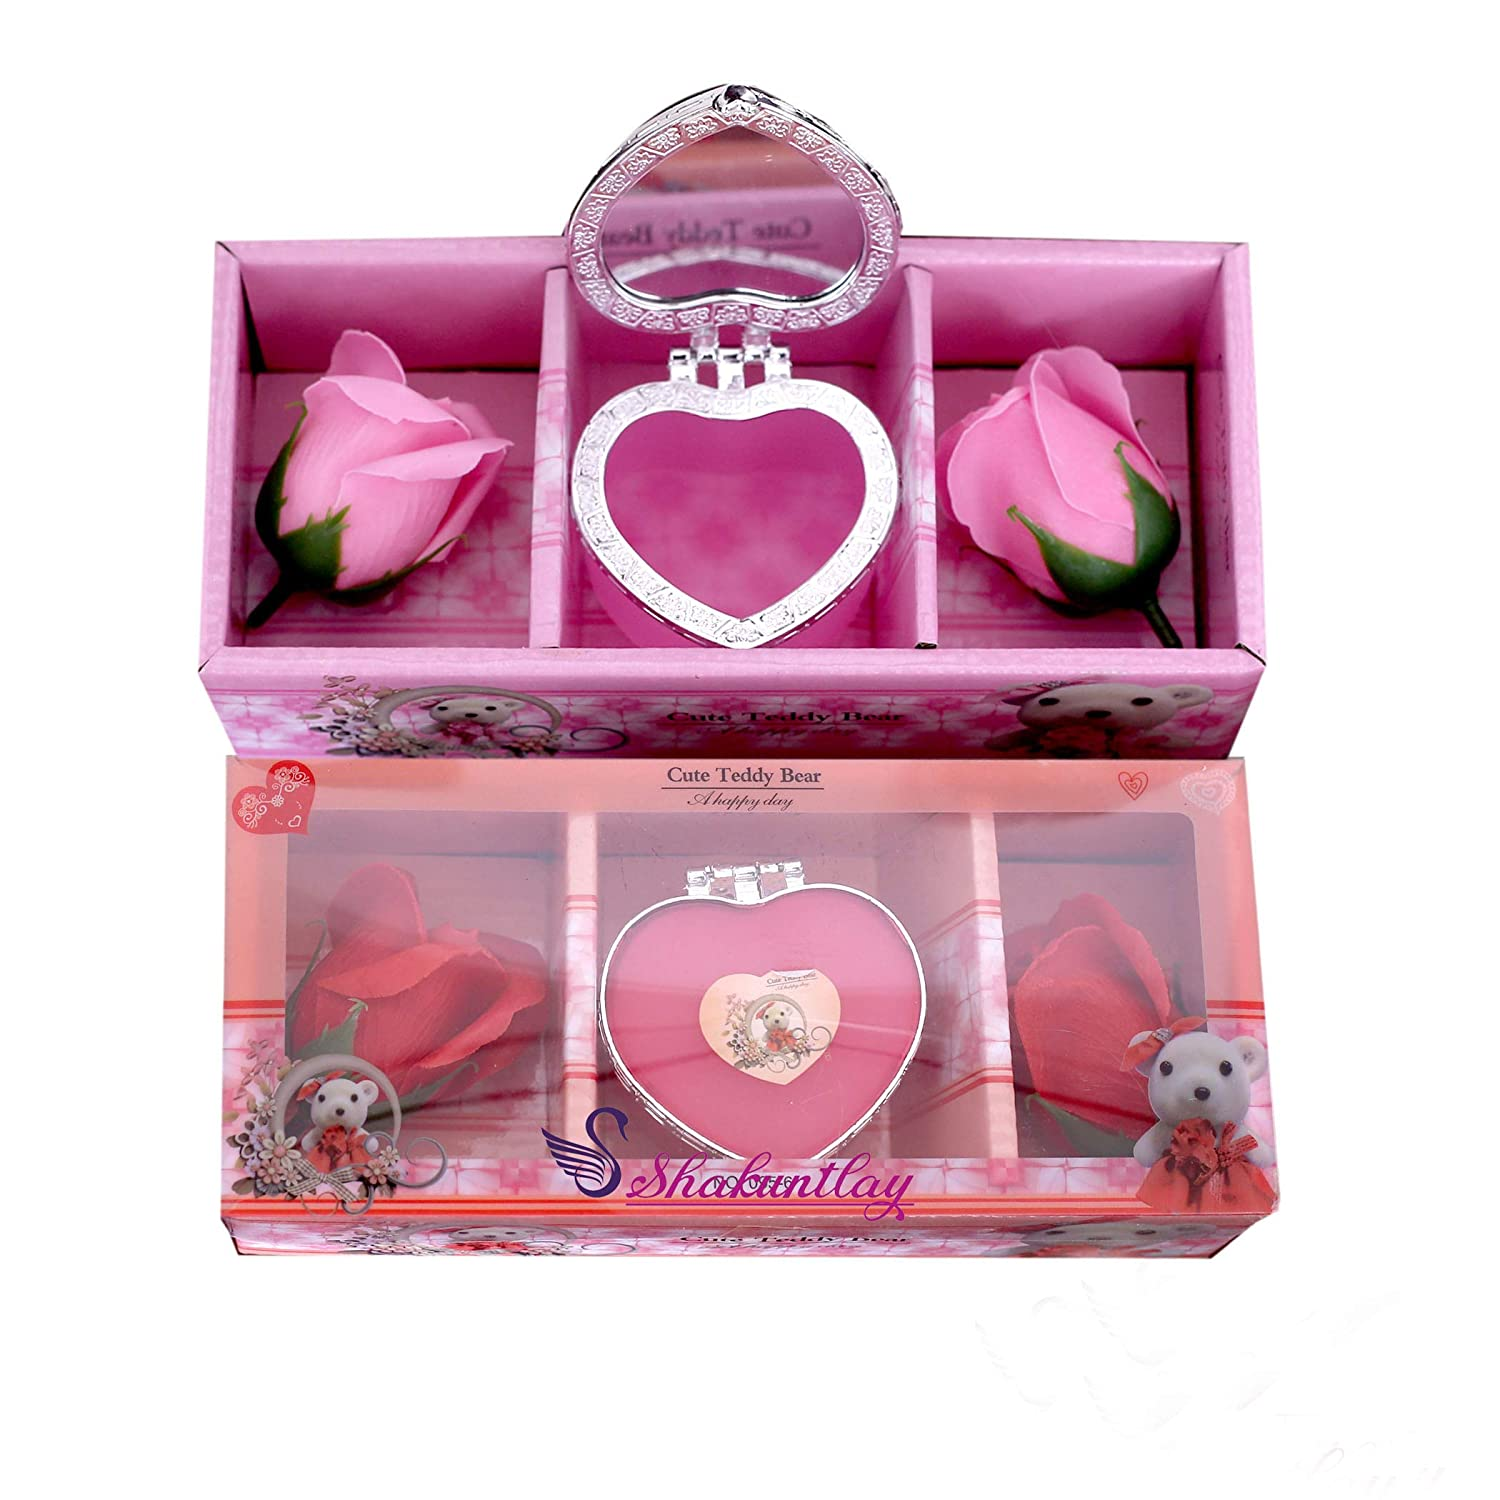 Buy Sshakuntlay Flower Jewellery Box Cute Valentine Gifts For Wife Girlfriend Boyfriend Special Anniversary Birthday Gift Online At Low Prices In India Amazon Jewellery Store Amazon In